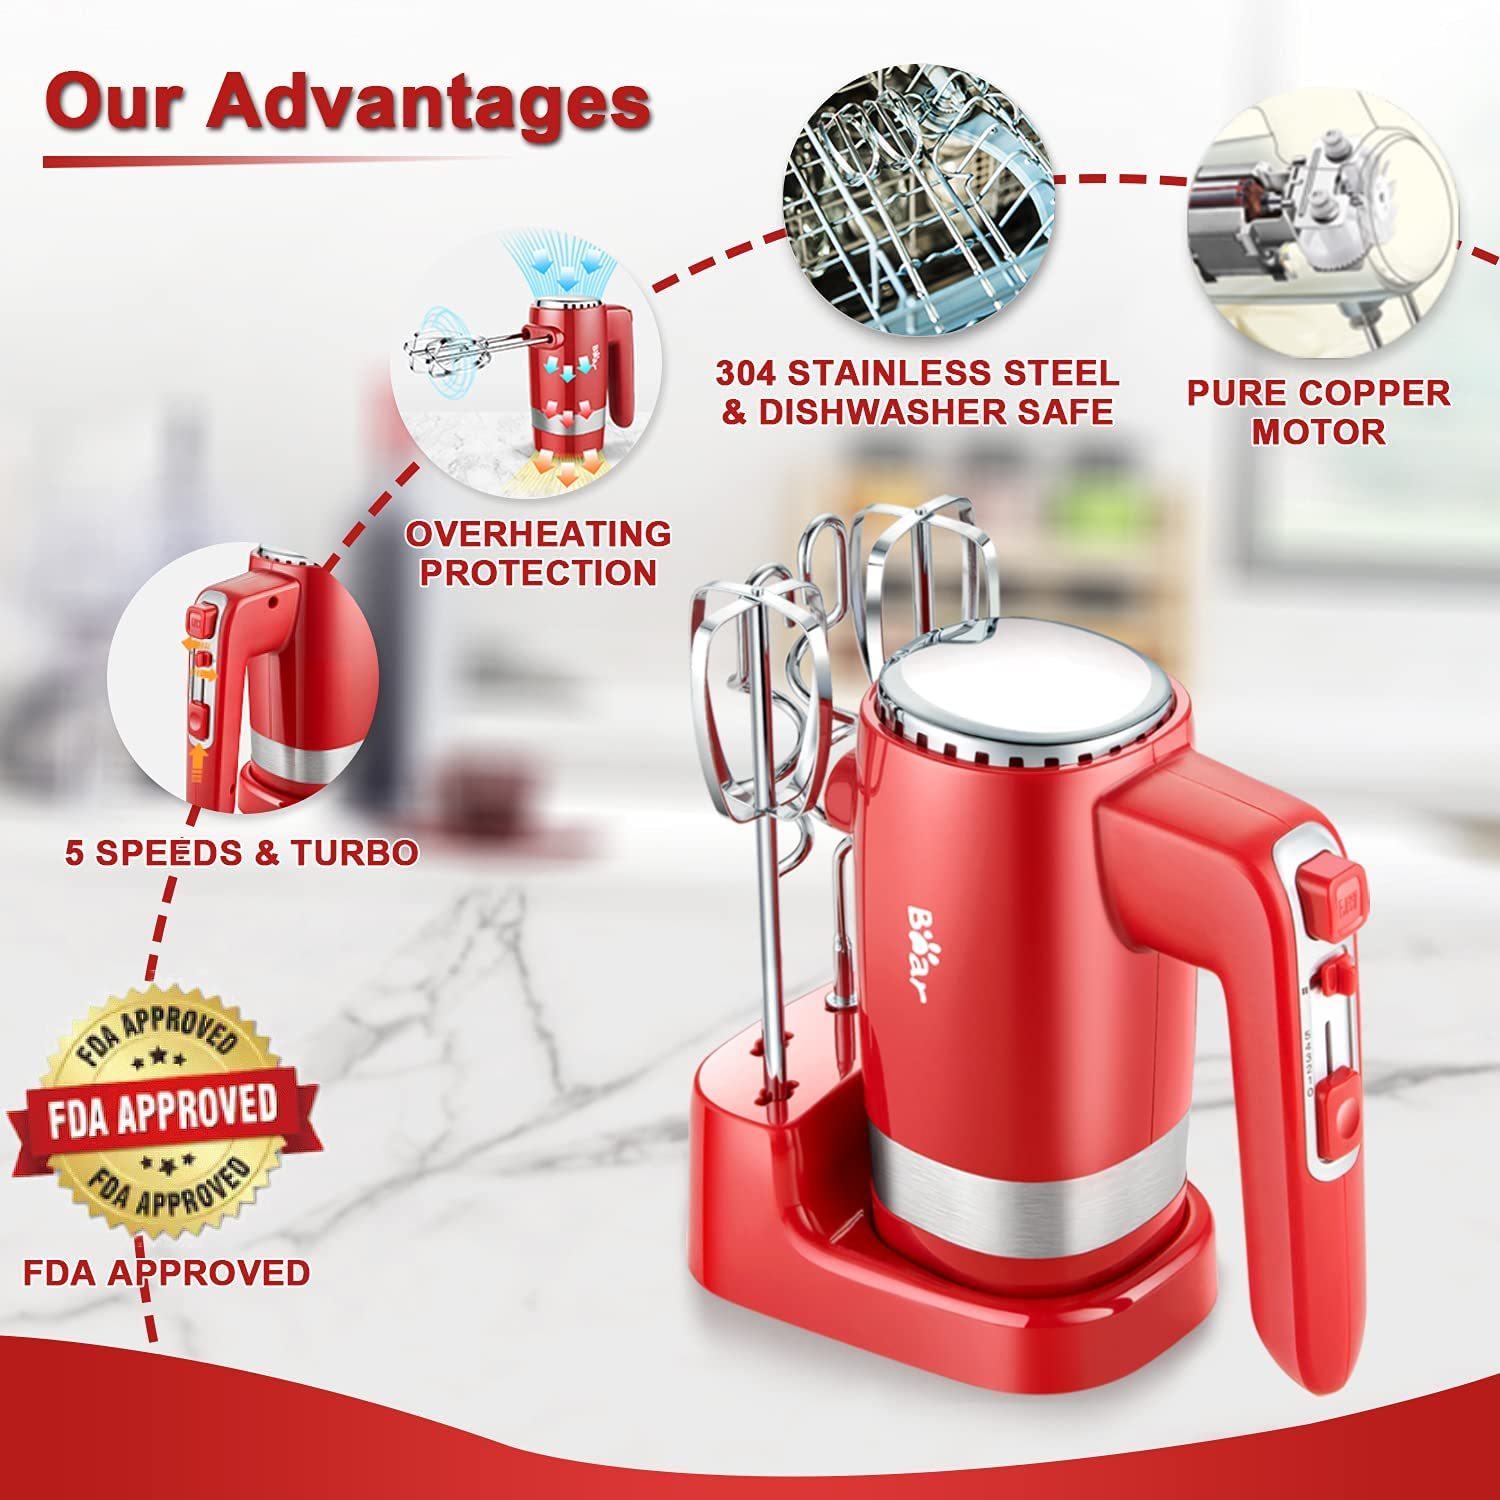 [US Direct] Hand Mixer Electric, Bear 2x5 Speed 300W Electric Hand Mixer with 4 Stainless Steel Accessories Storage Base Eject Button Power Advantage Red Hand Mixer for Easy Whipping Dough, Cream, Cake, Cookies  24*17*20